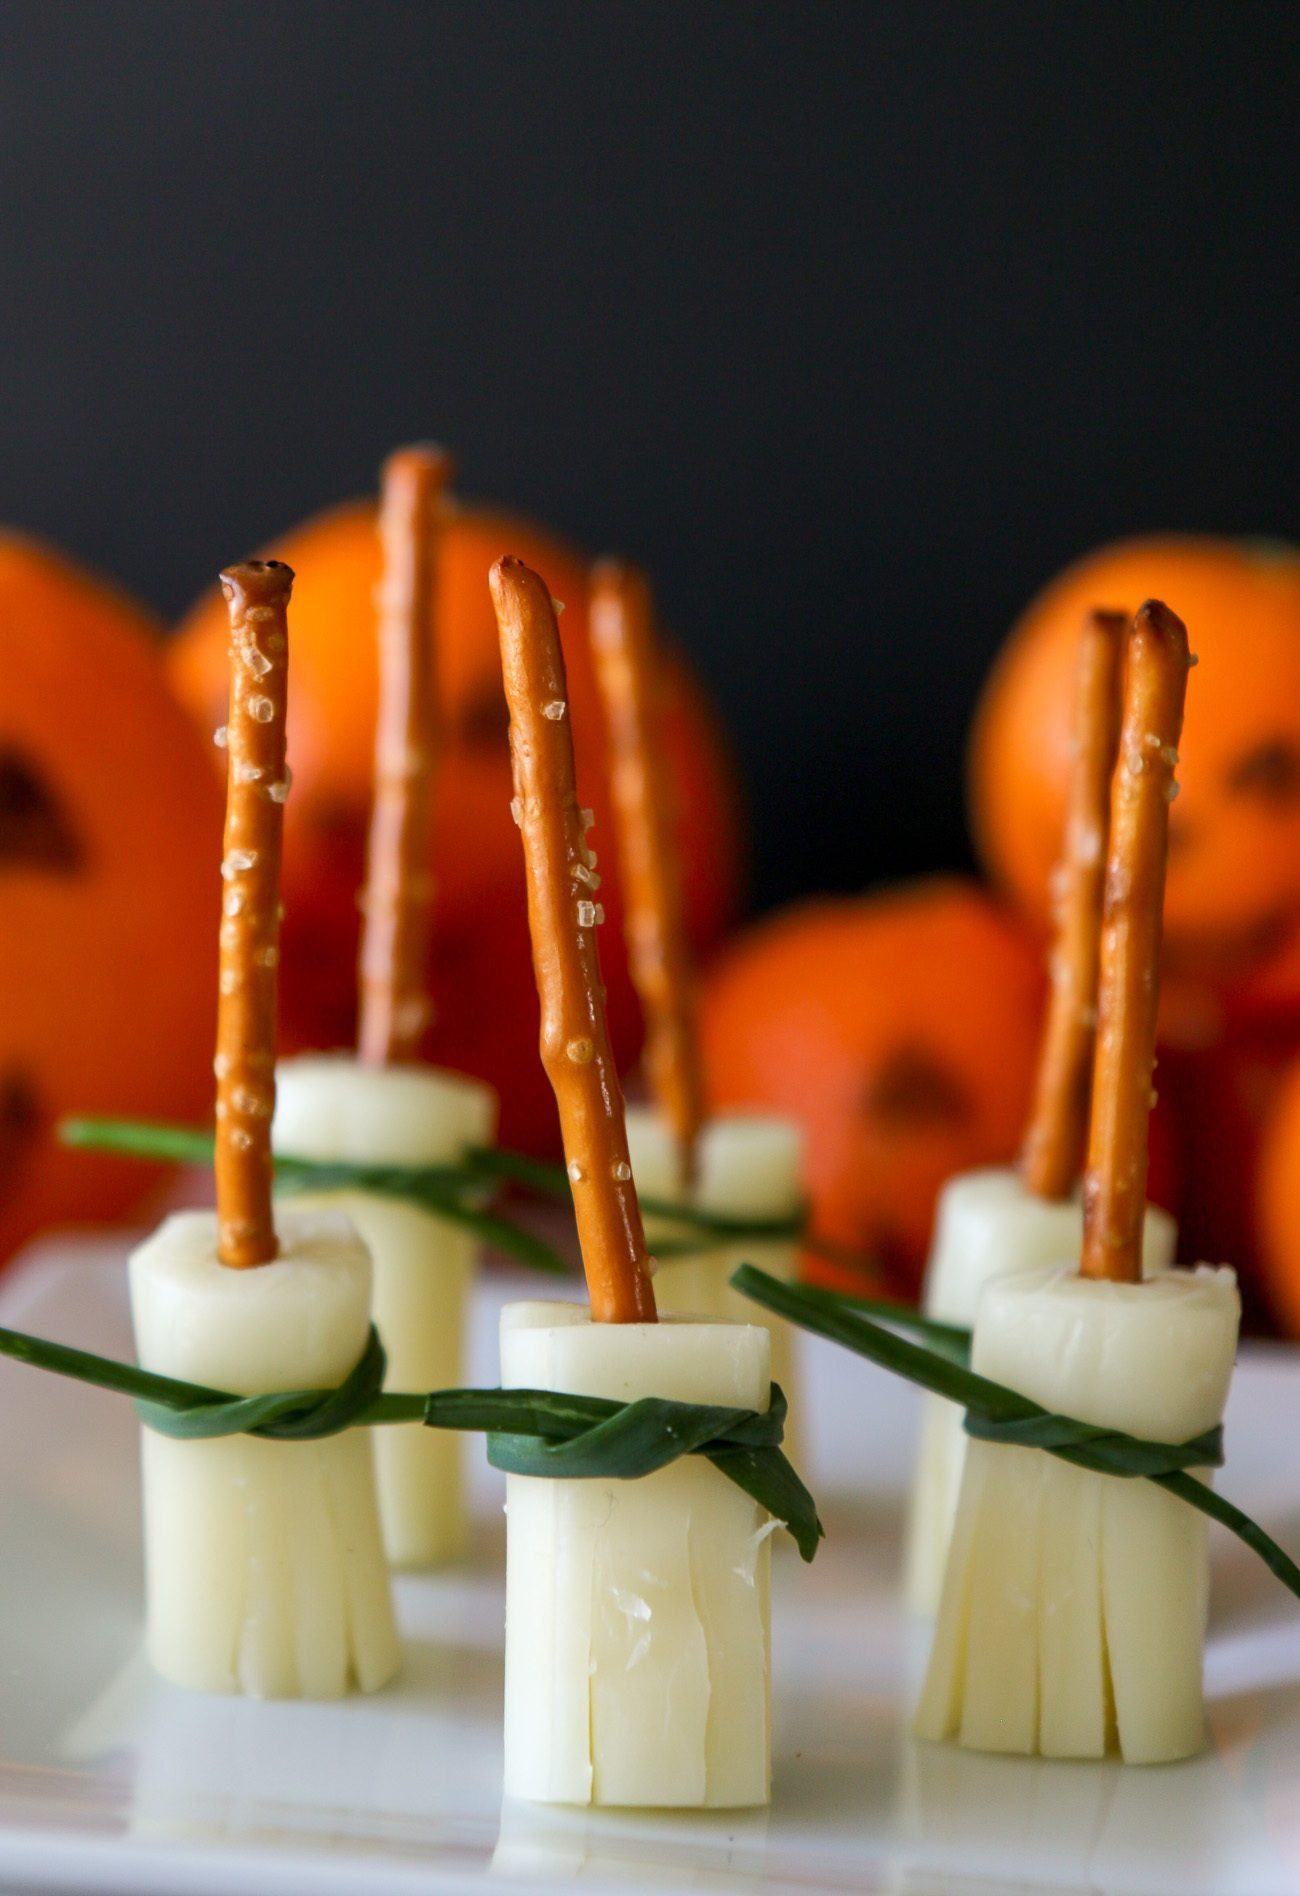 Witch broomsticks made from string cheese and pretzel sticks.